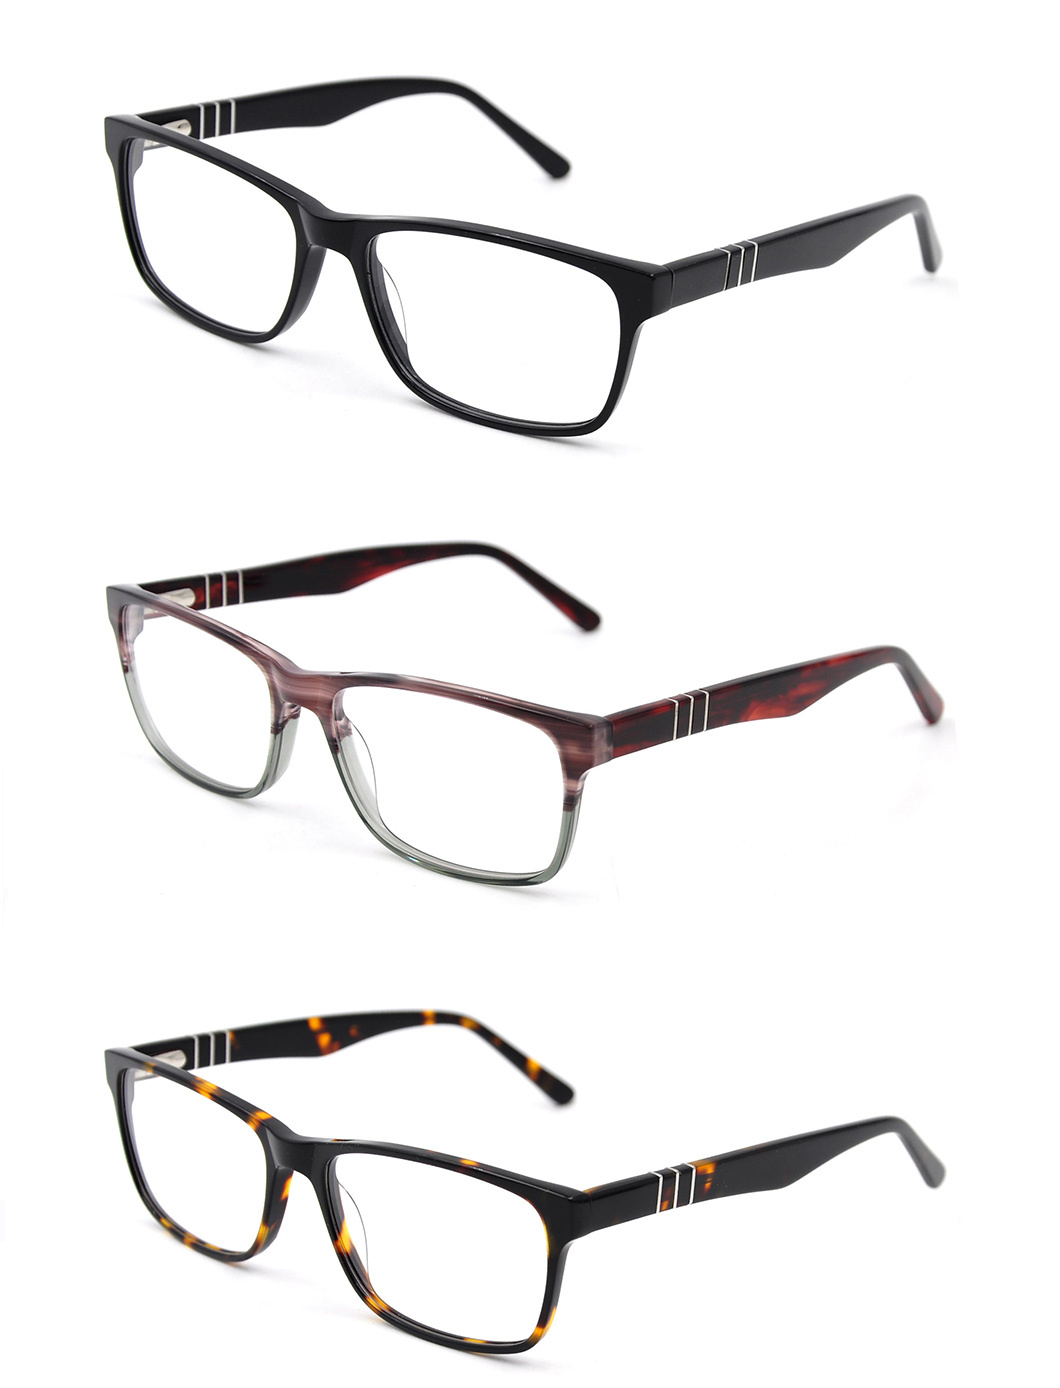 Acetate Stock Optical Chelsea Morgan Eyewear Wholesale Optical ...